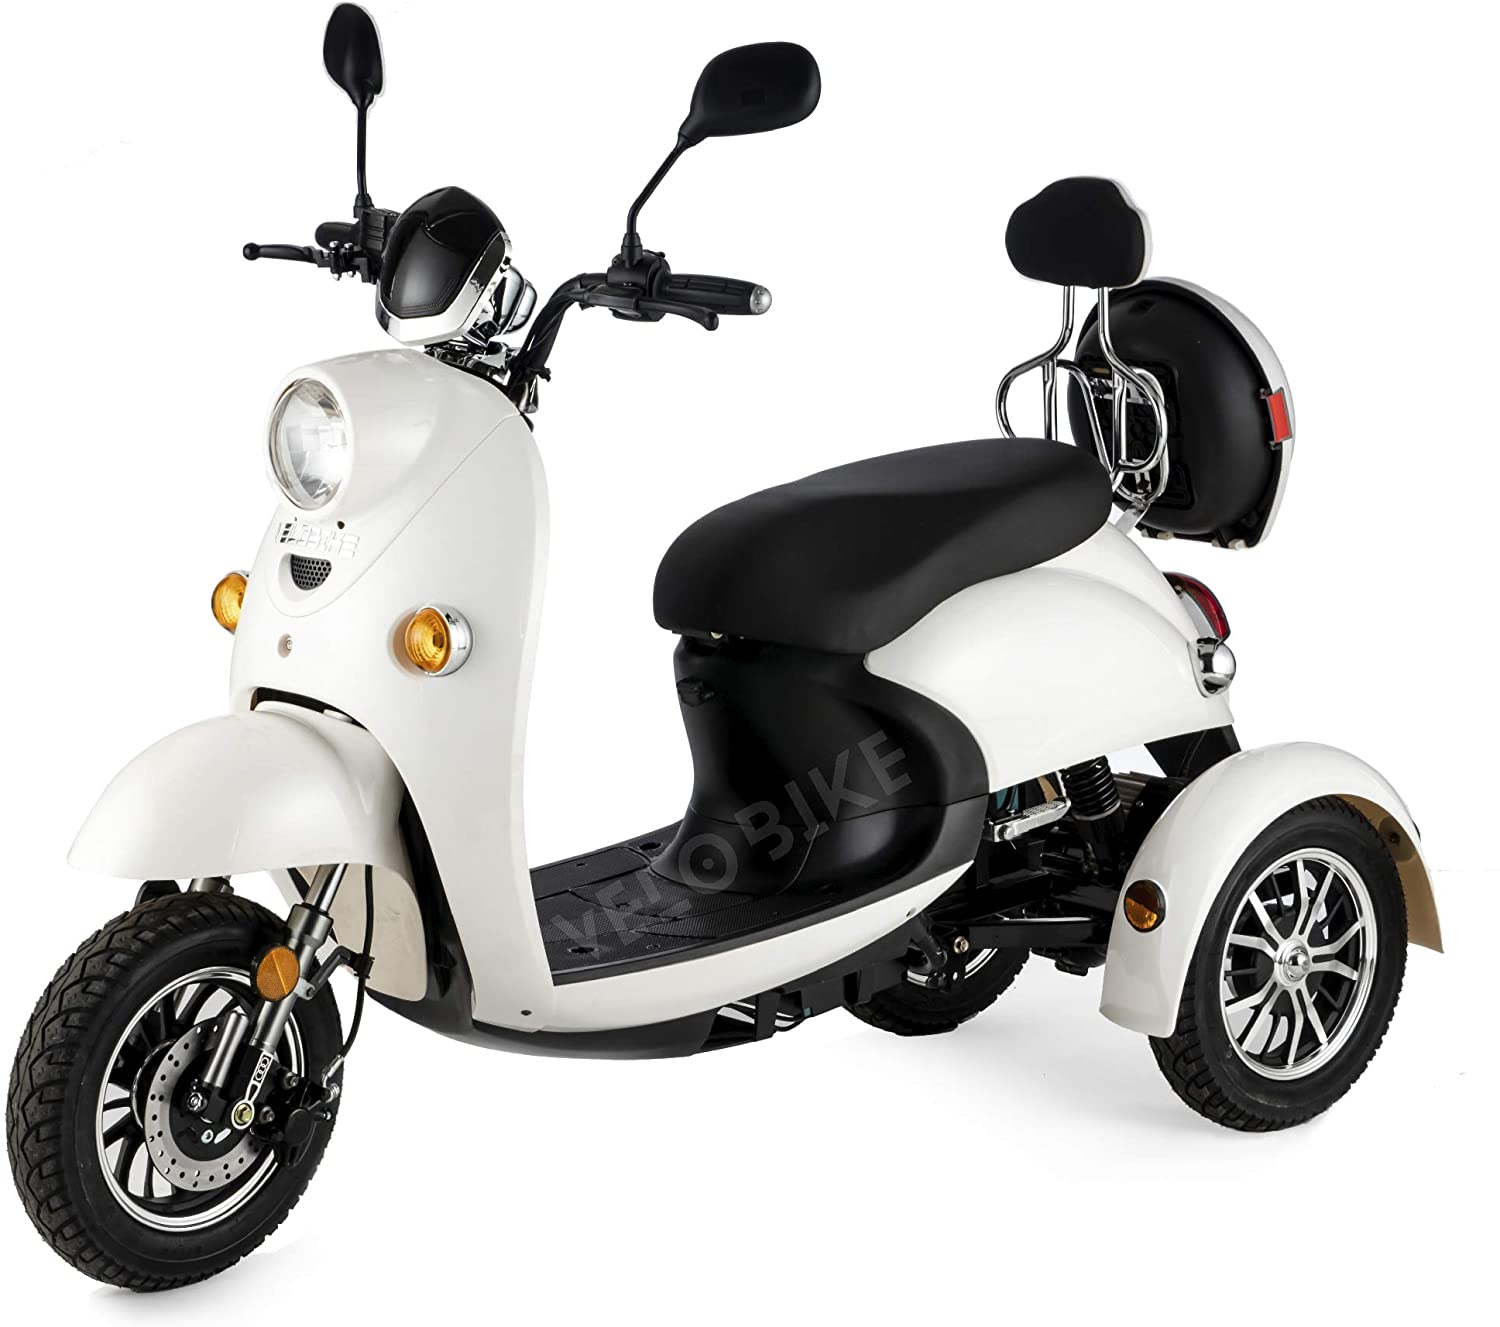 Scooter 3 Ruote Amazon